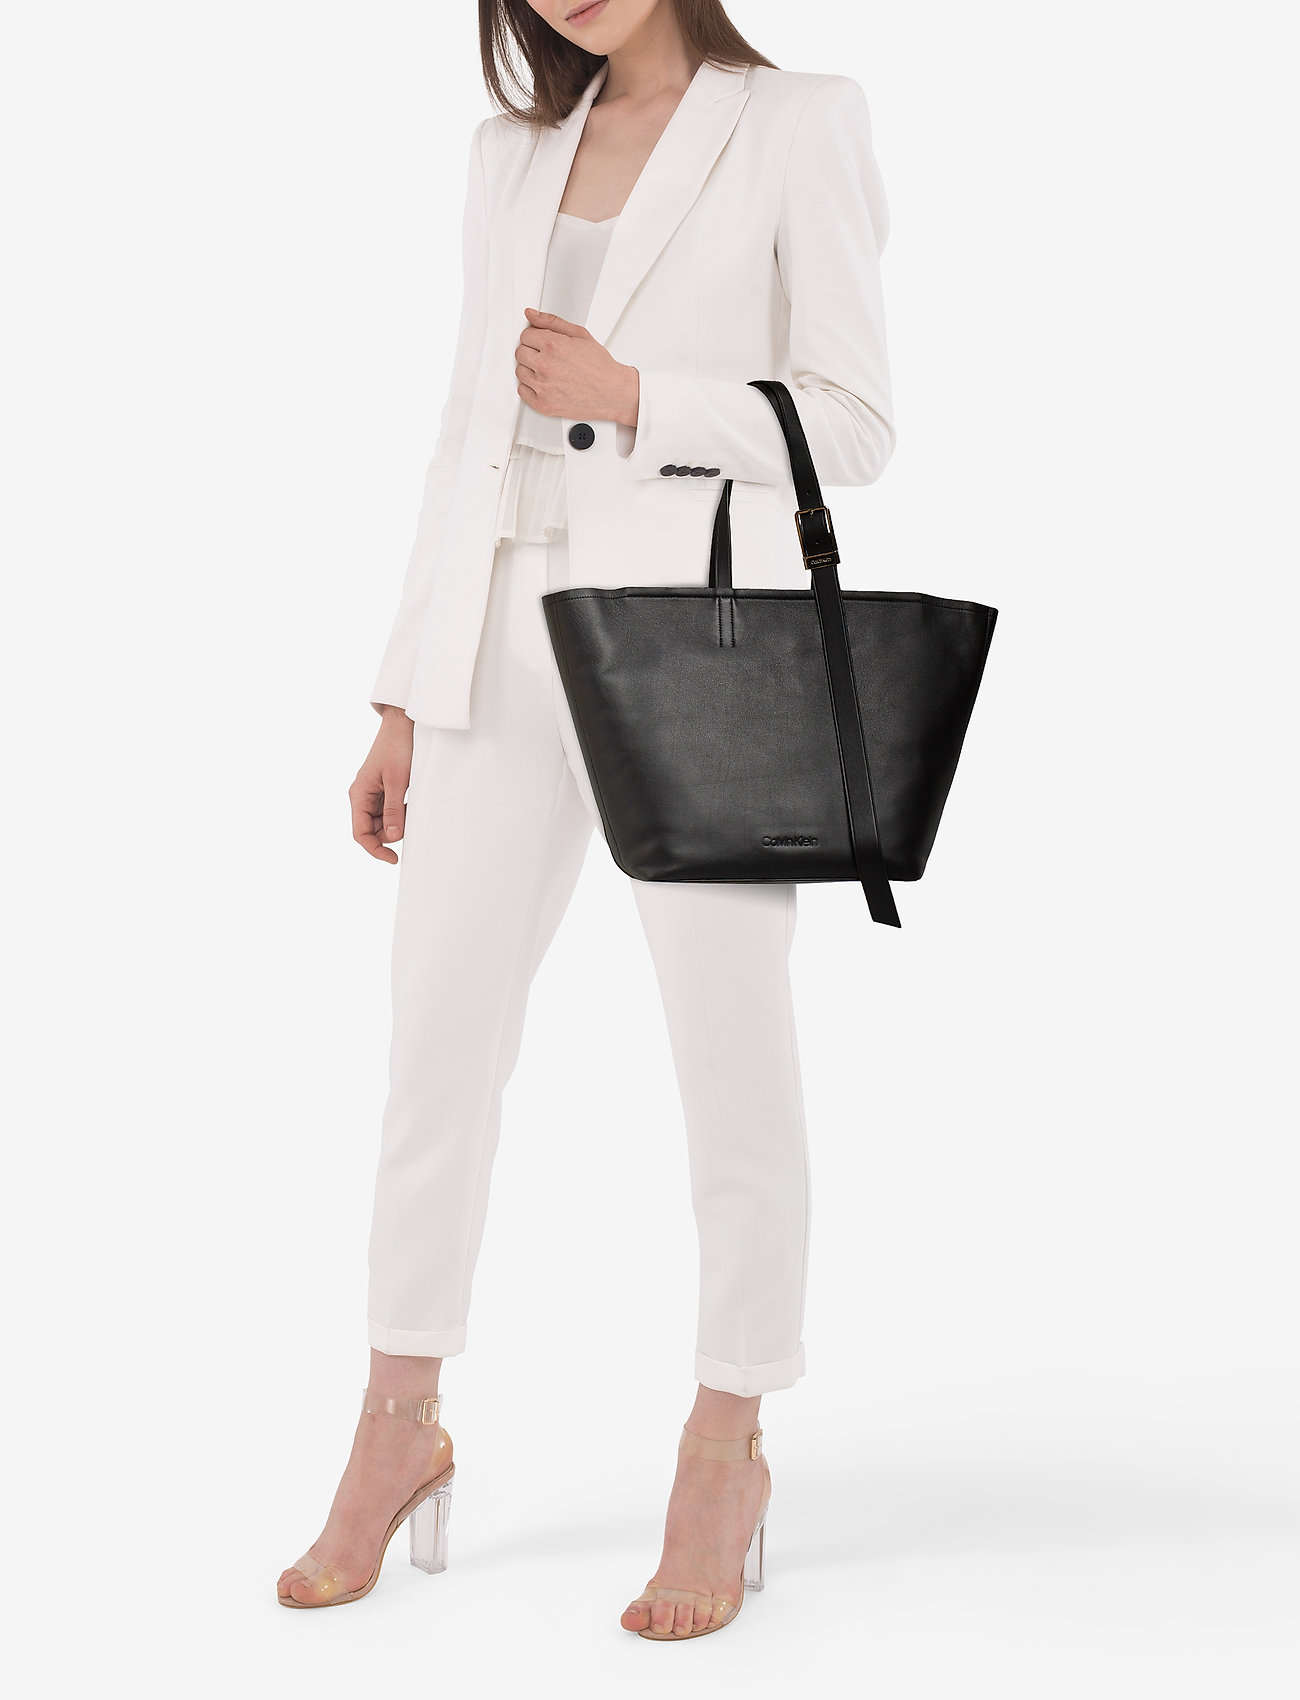 Calvin Klein STRAPPED SHOPPER - BLACK